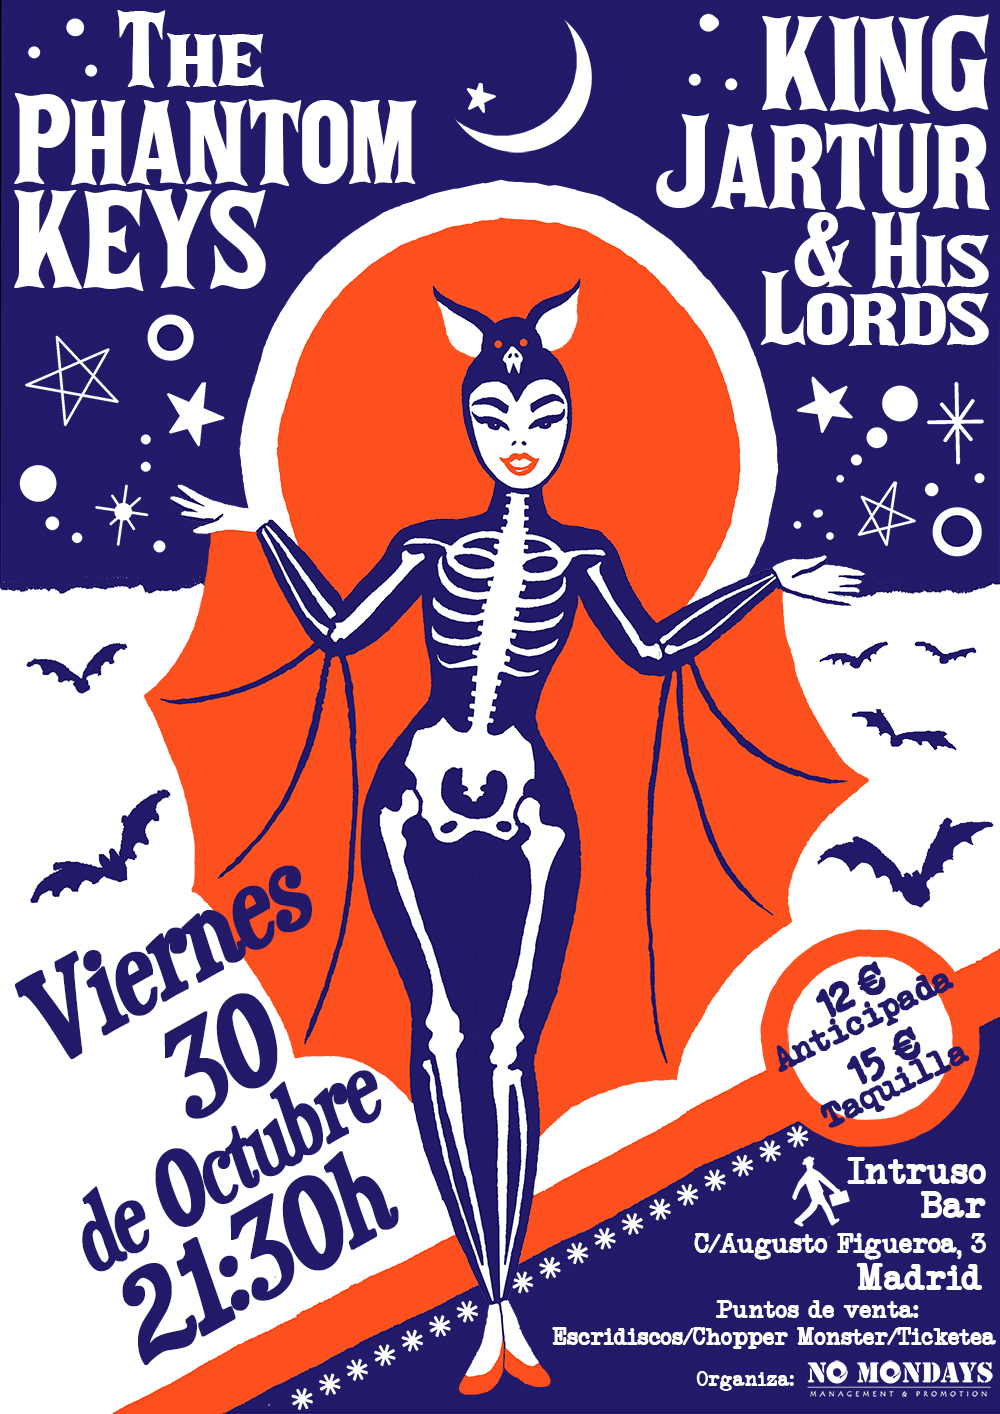 The Phantom Keys + King Jartur & His Lords - 30/10/2015 - El Intruso